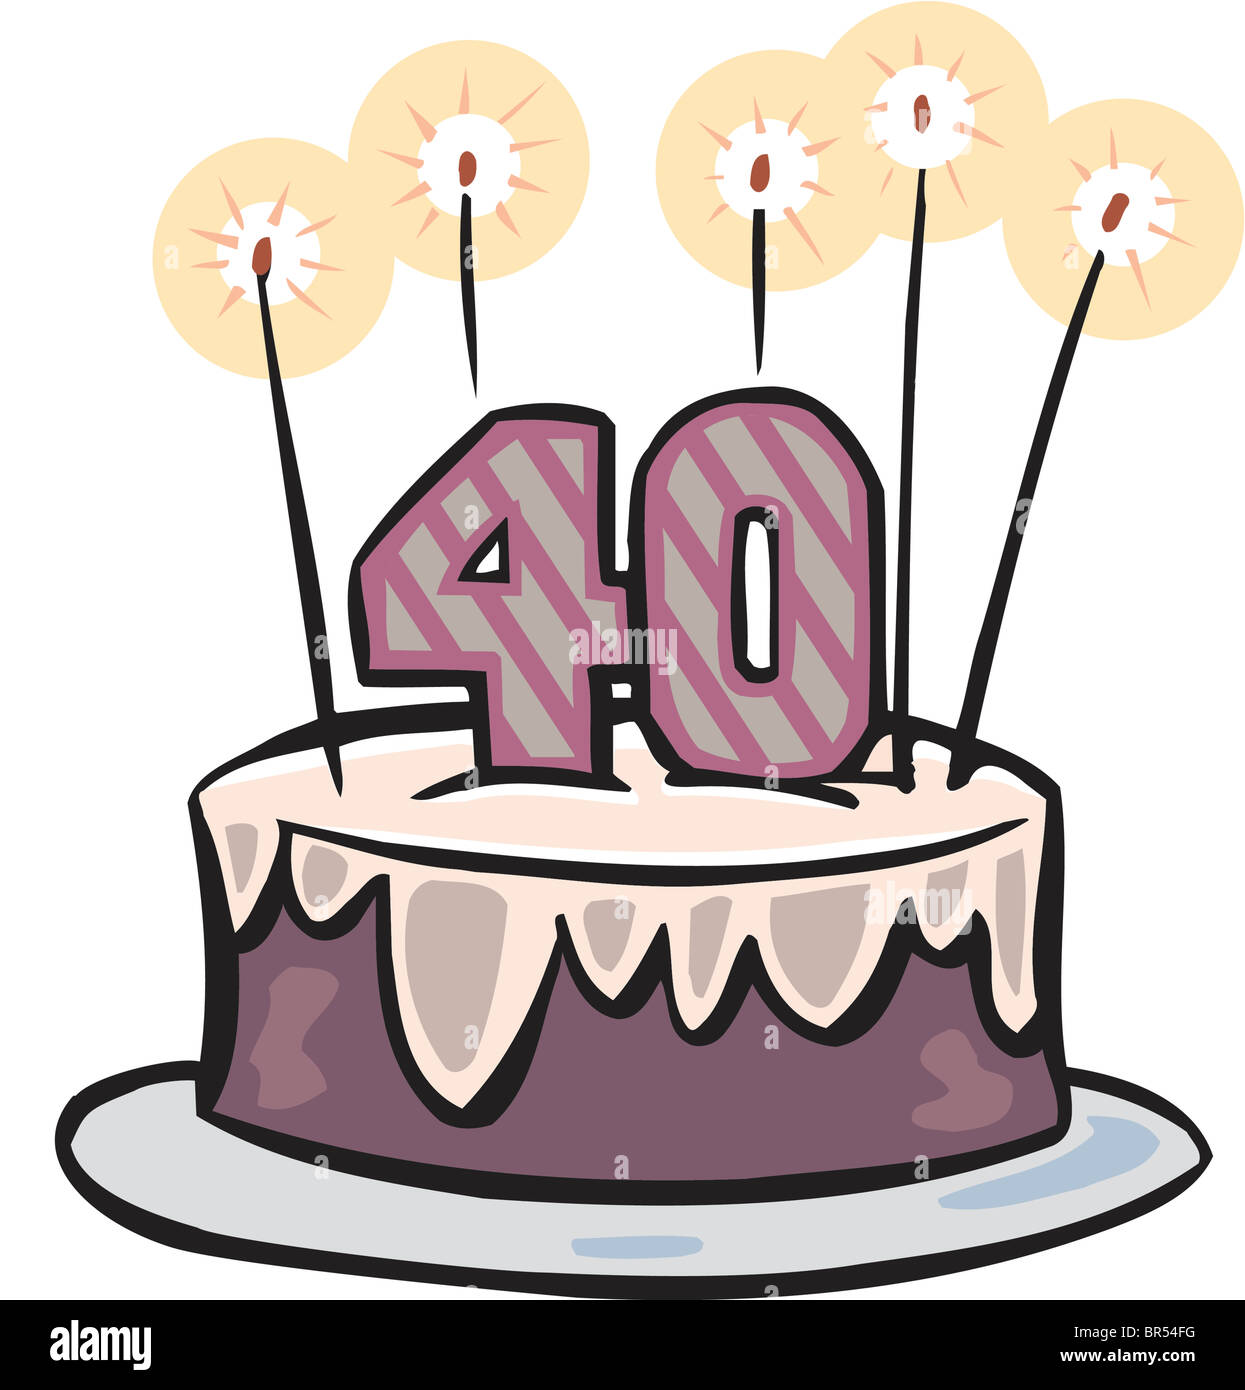 Surprising A Fortieth Birthday Cake With Candles Stock Photo 31460788 Alamy Funny Birthday Cards Online Sheoxdamsfinfo